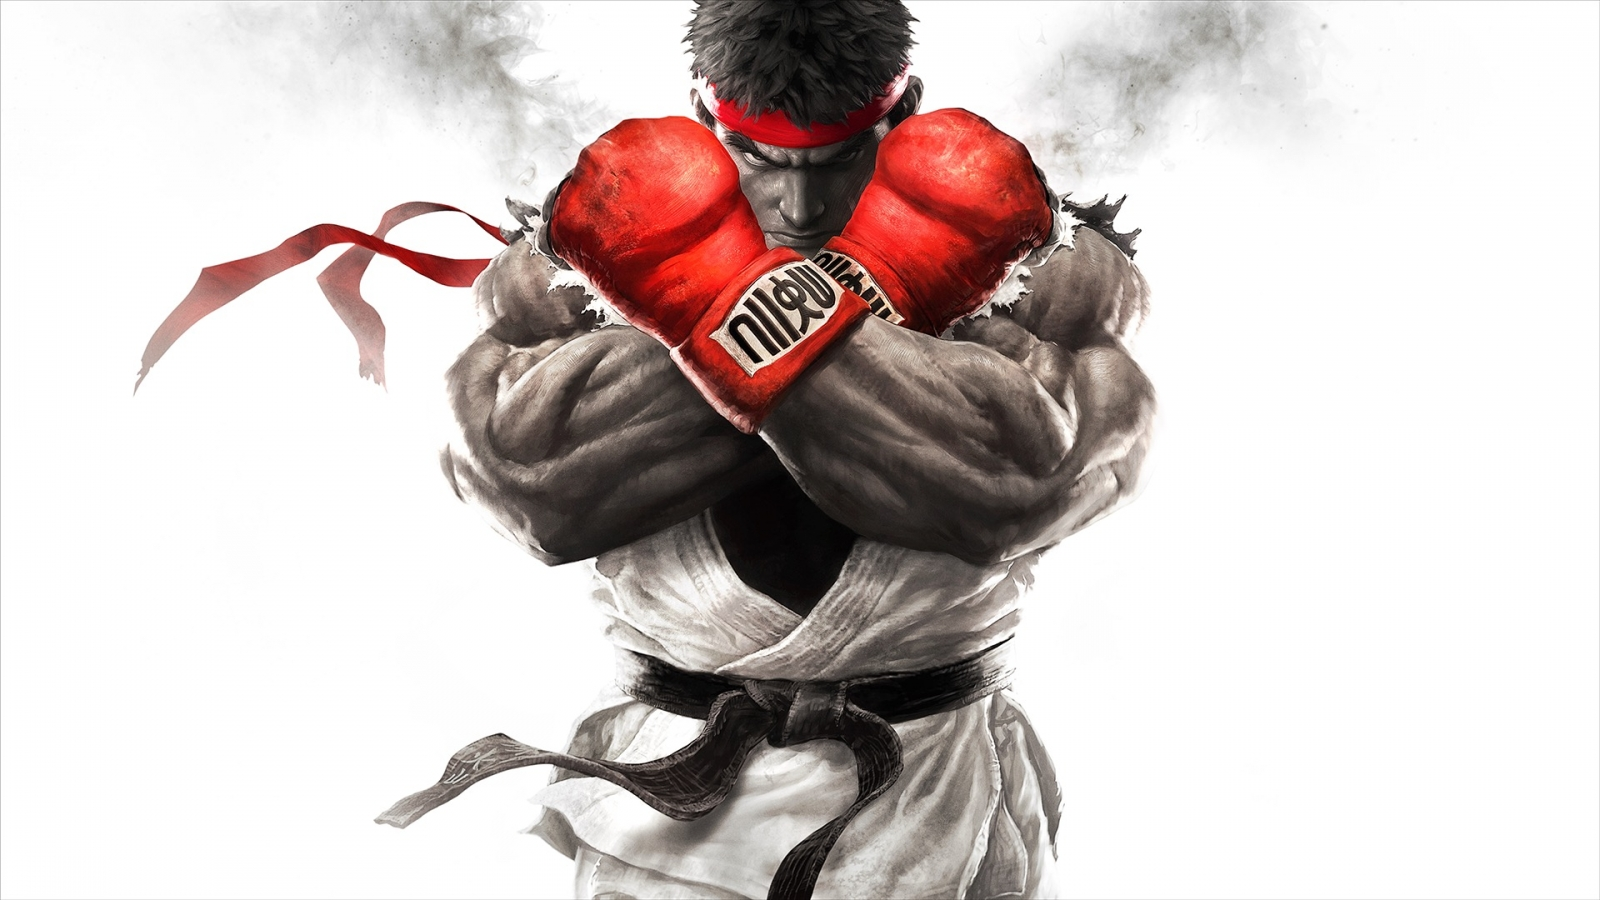 street-fighter-5-ryu-artwork